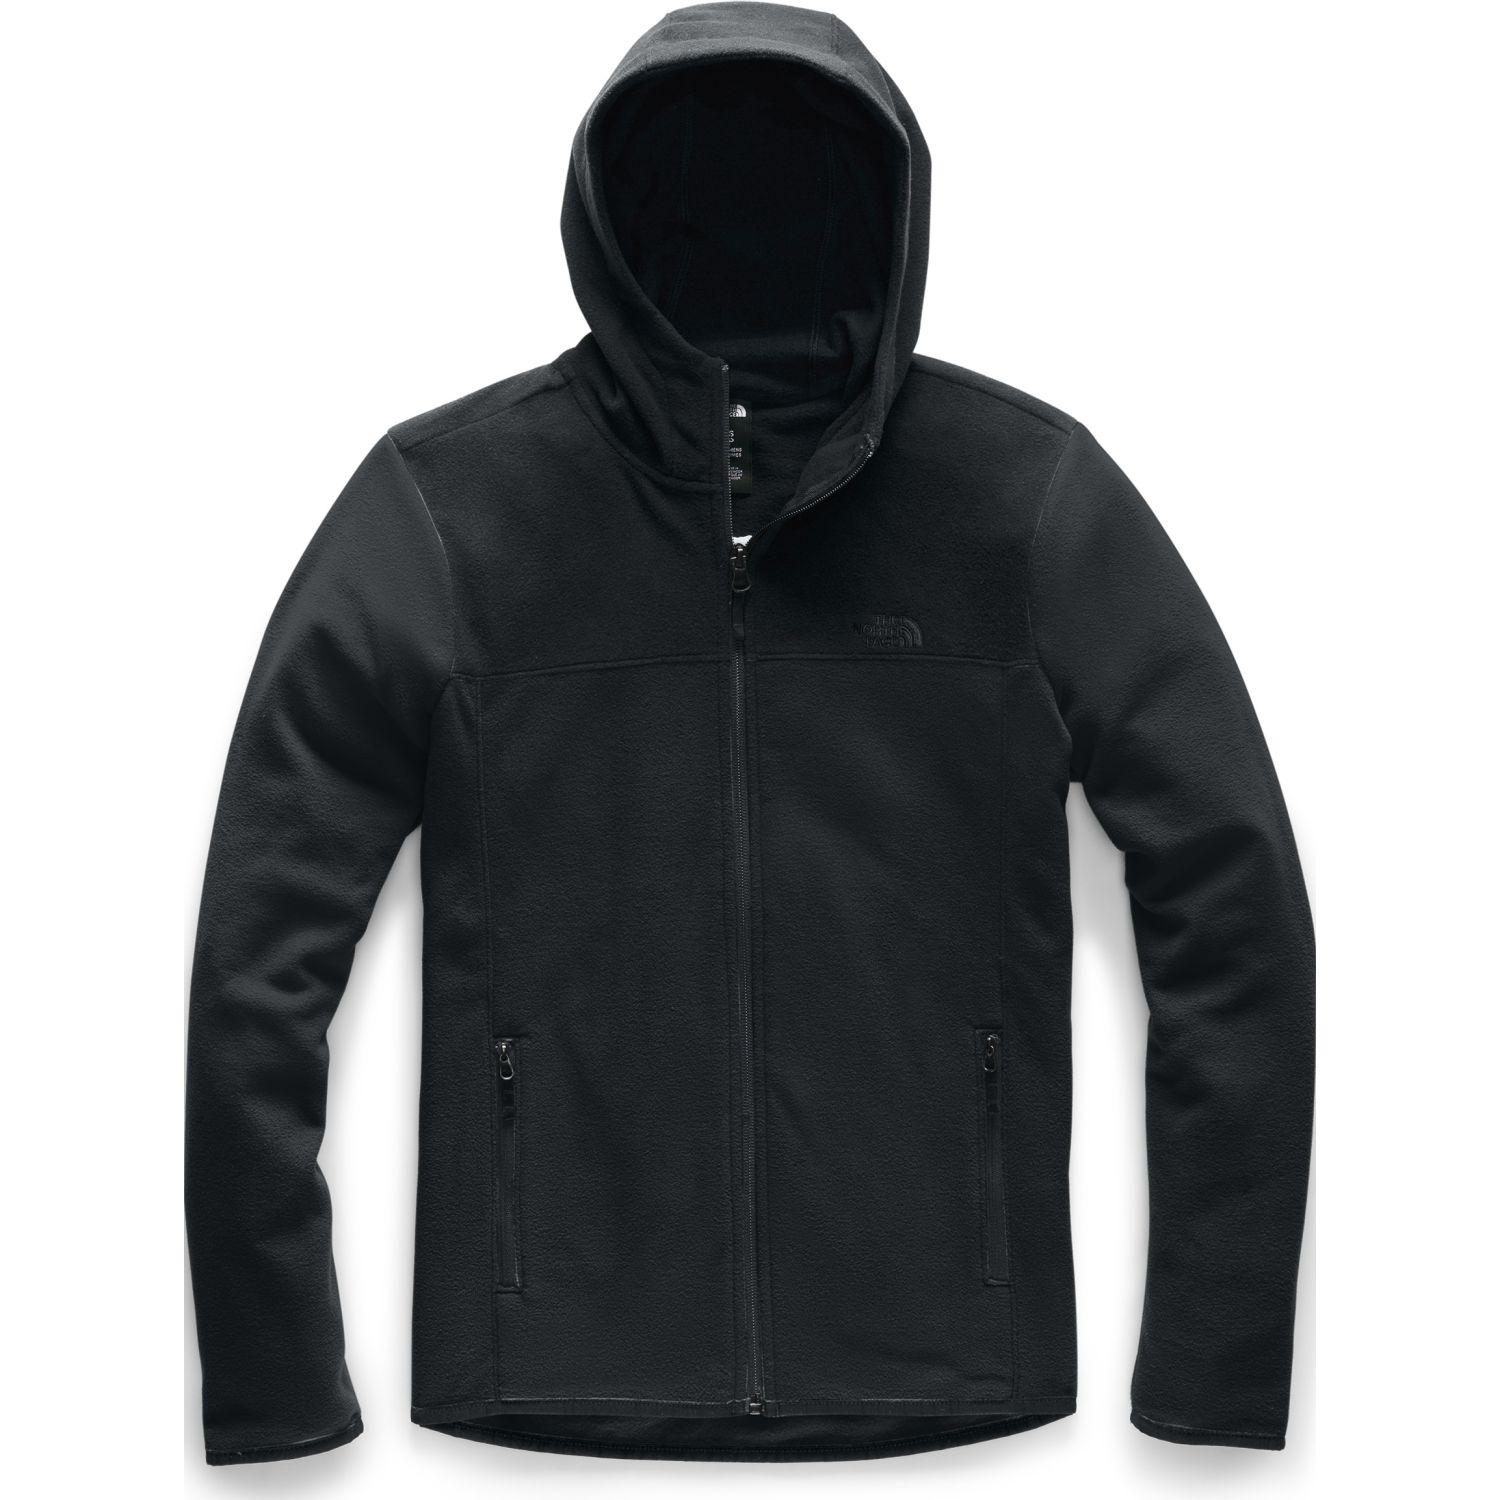 The North Face w tka glacier full zip hoodie Negro Pullovers